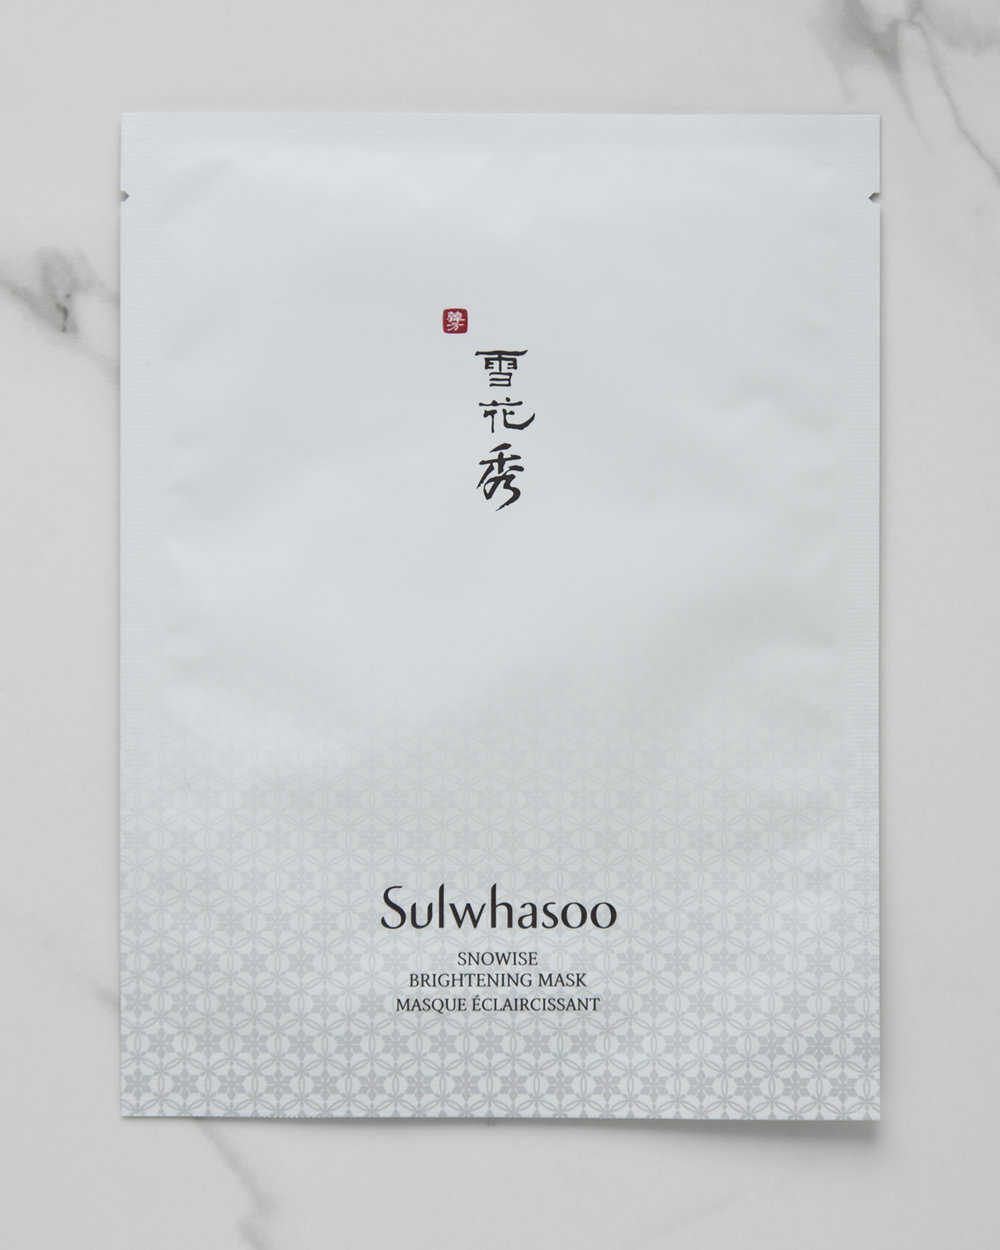 Sulwhasoo Snowise Brightening Mask $130 for 10 Masks